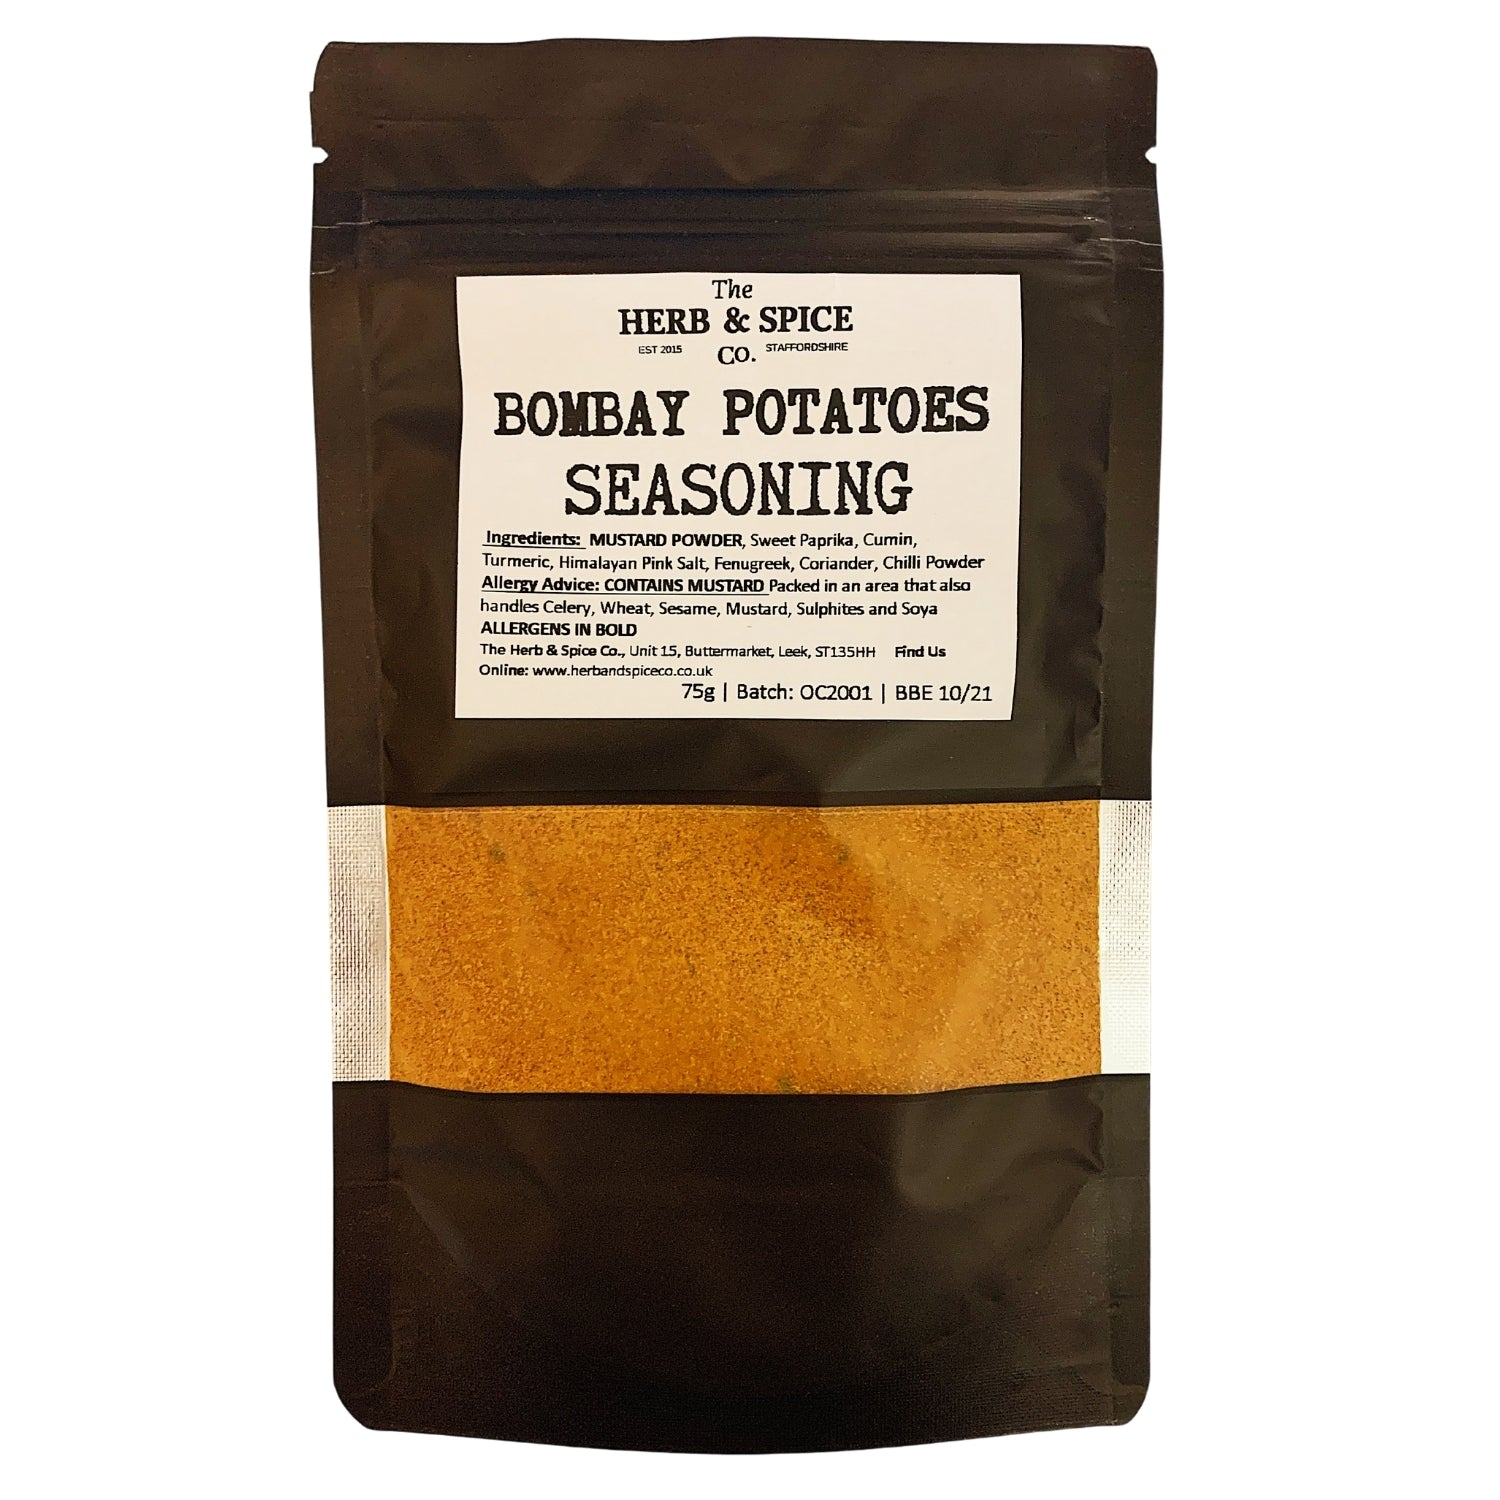 Bombay Potatoes Seasoning Spice Mix The Herb & Spice Co.